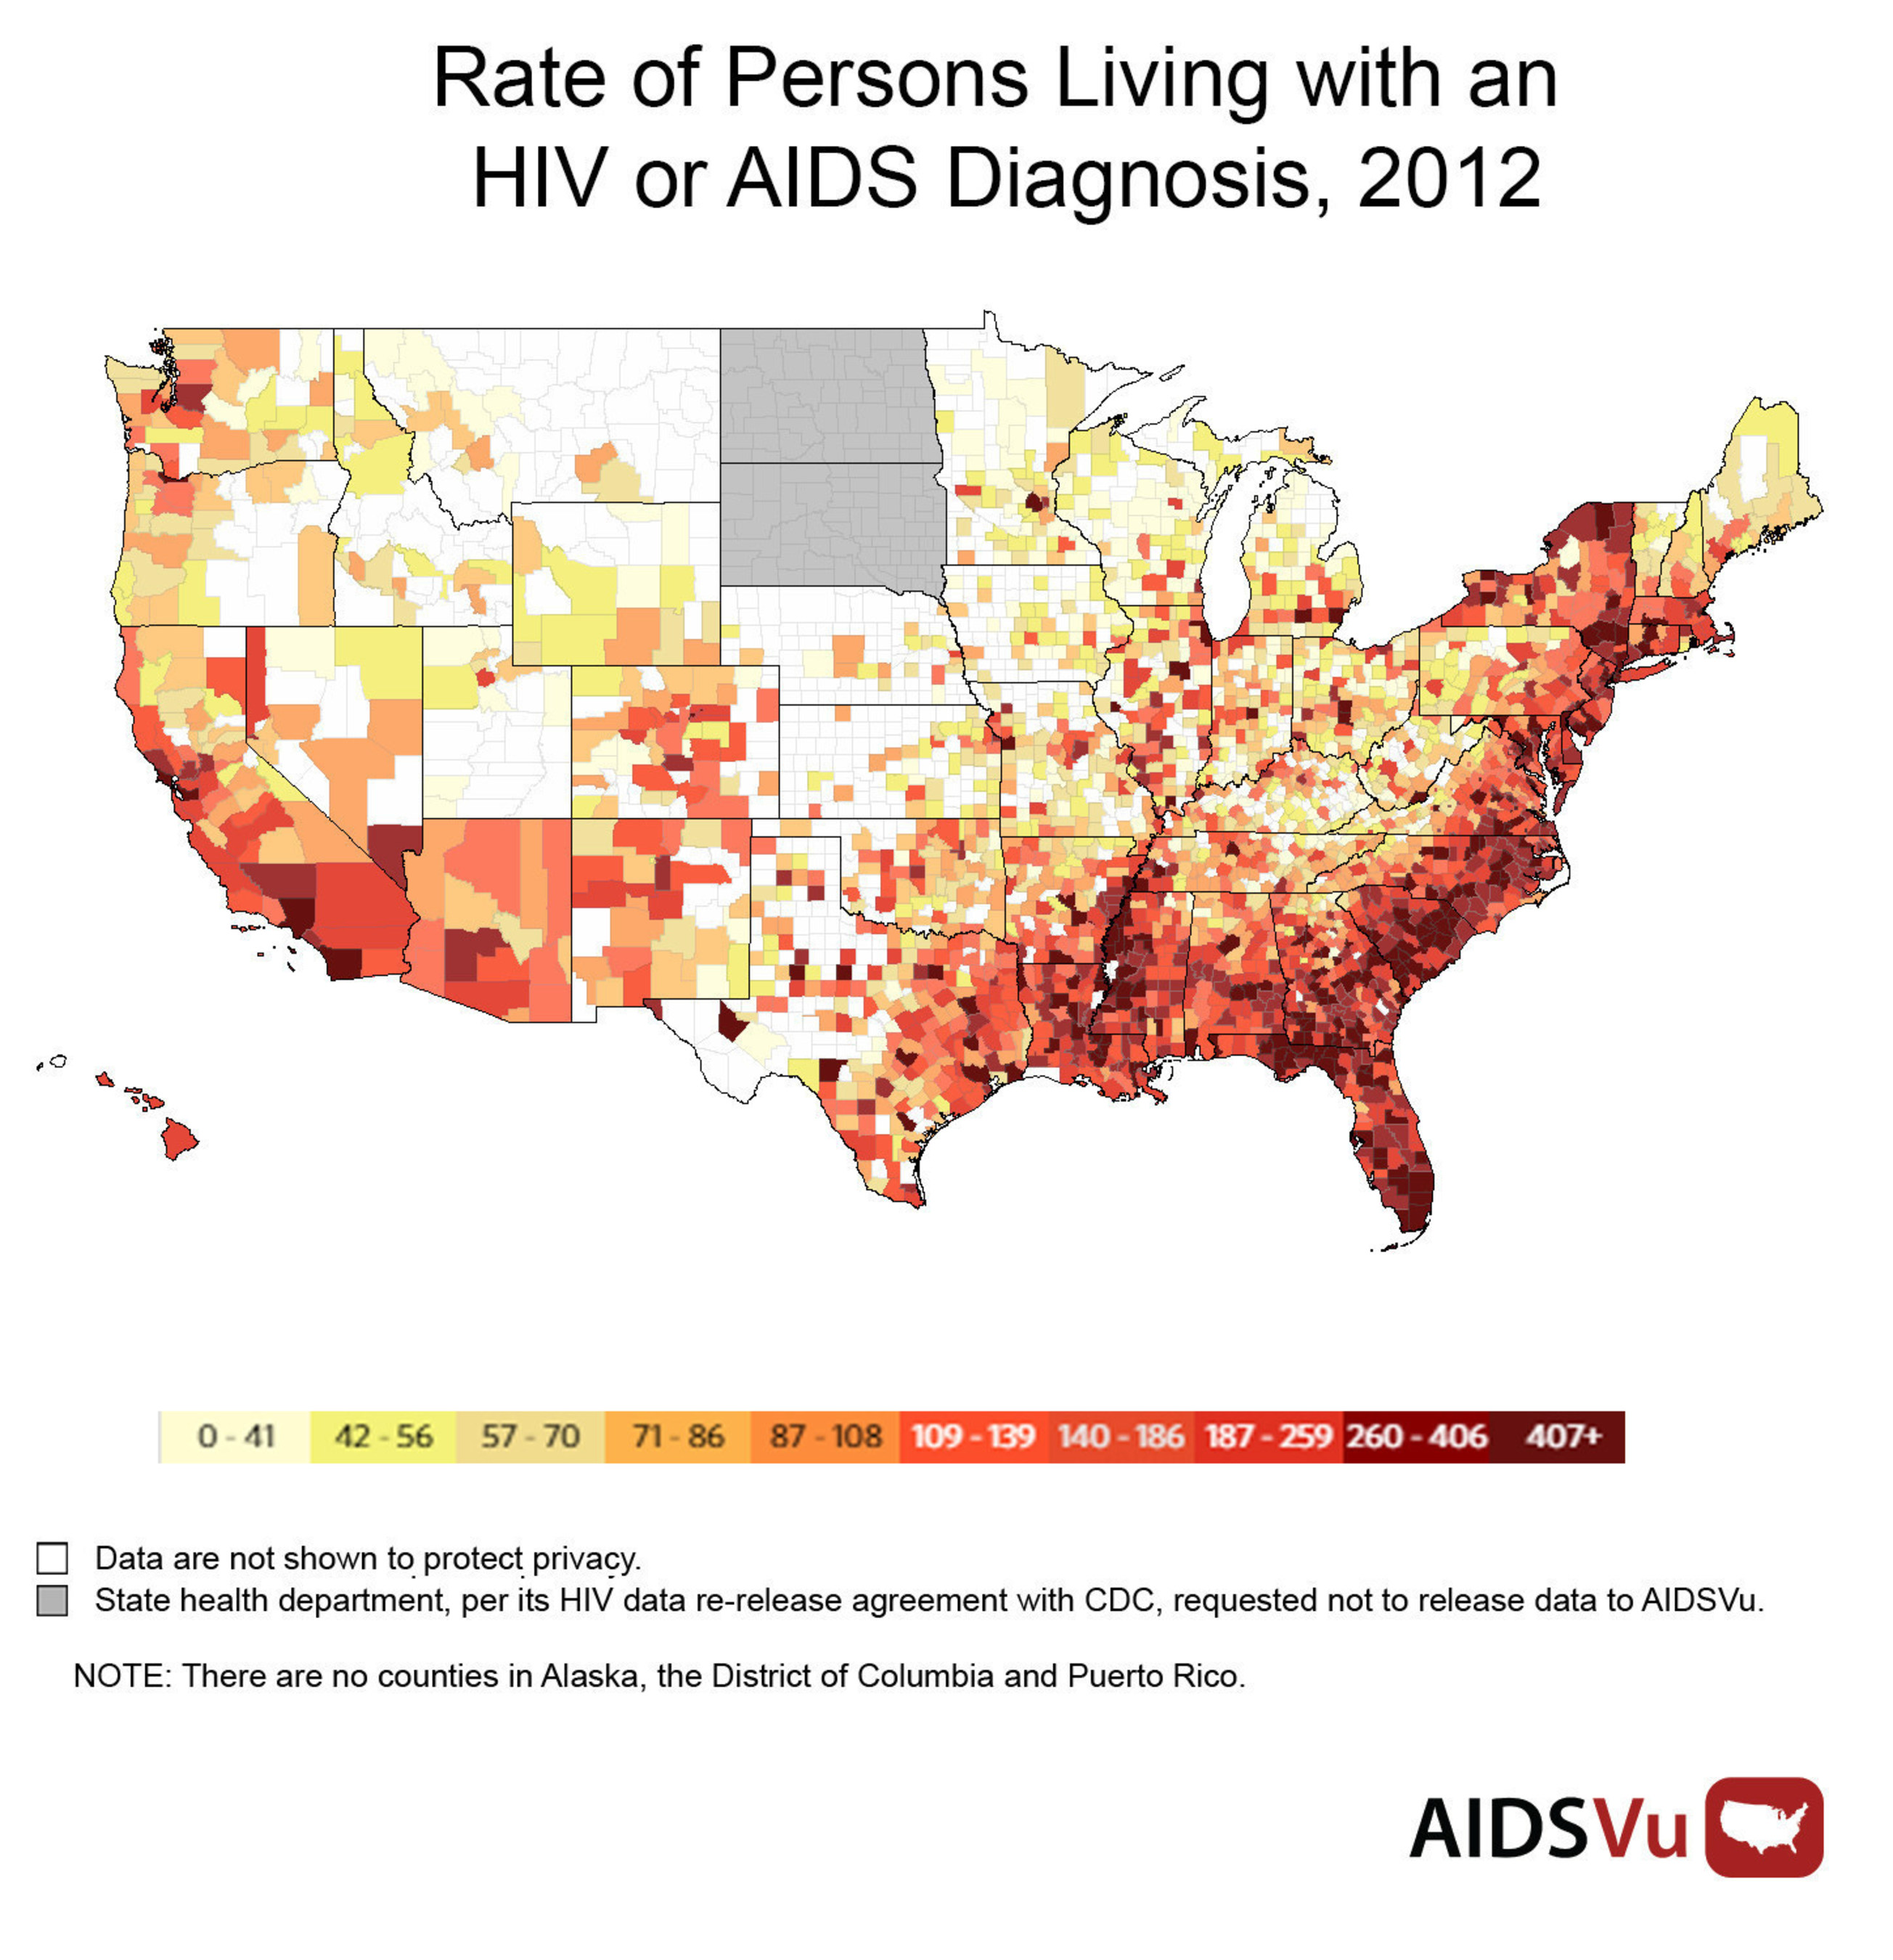 AIDSVu is a free, interactive online site that provides the most detailed publicly available view of HIV in the United States. It displays HIV prevalence and new diagnosis data at national, state, and local levels, and by different demographics, including age, race, and sex. www.AIDSVu.org